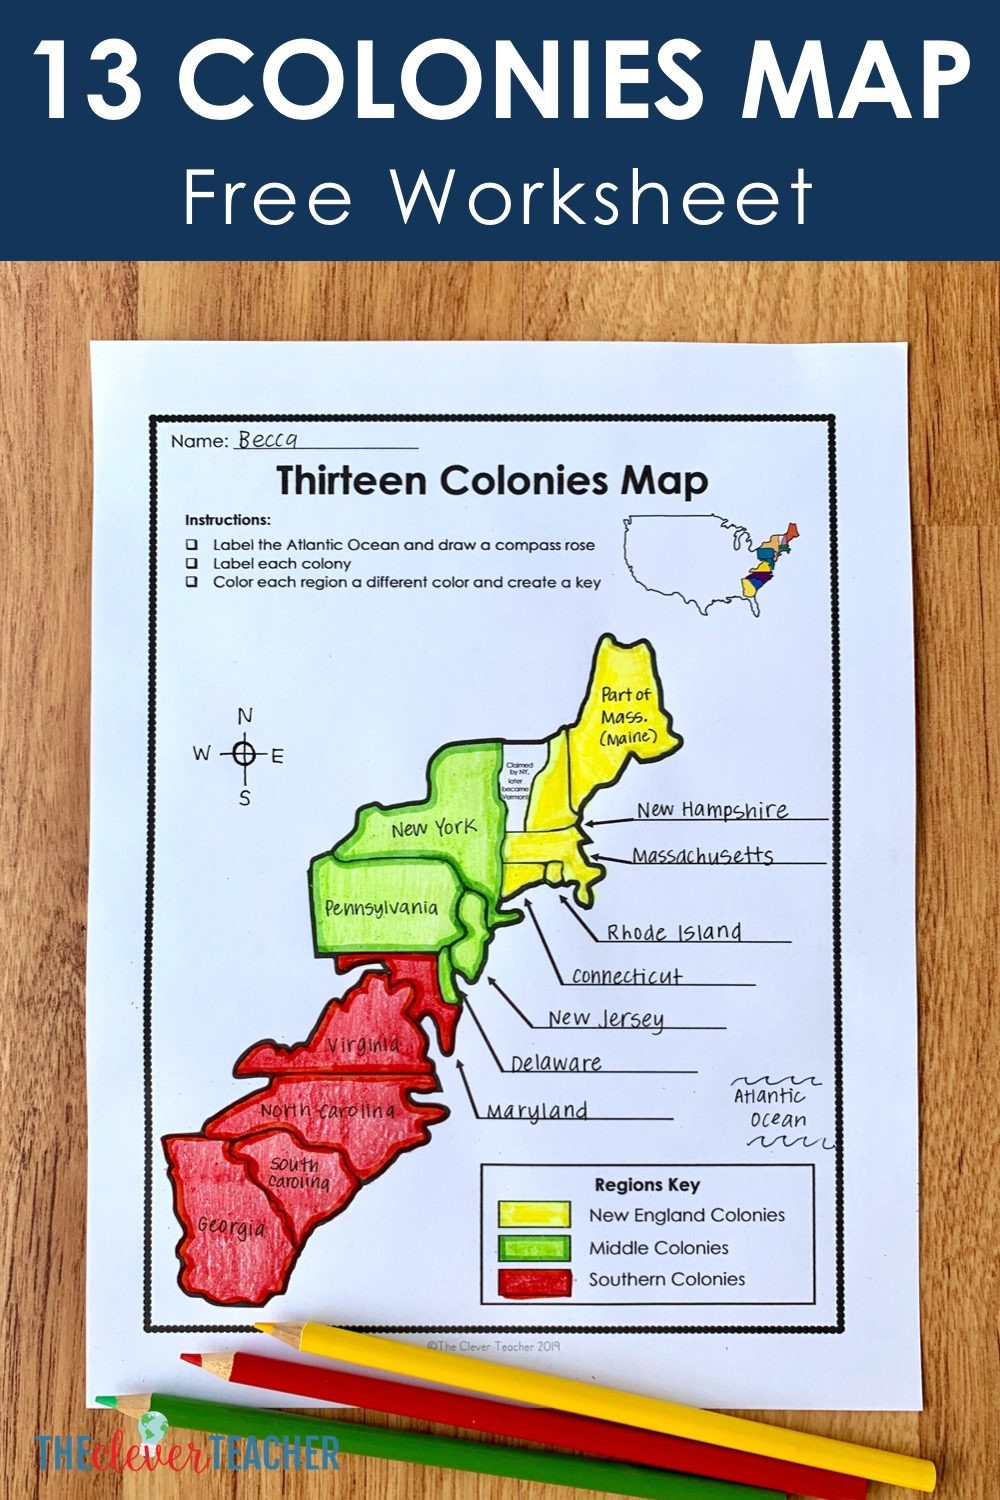 Civil War Map Worksheet 13 Colonies Free Map Worksheet and Lesson for Students